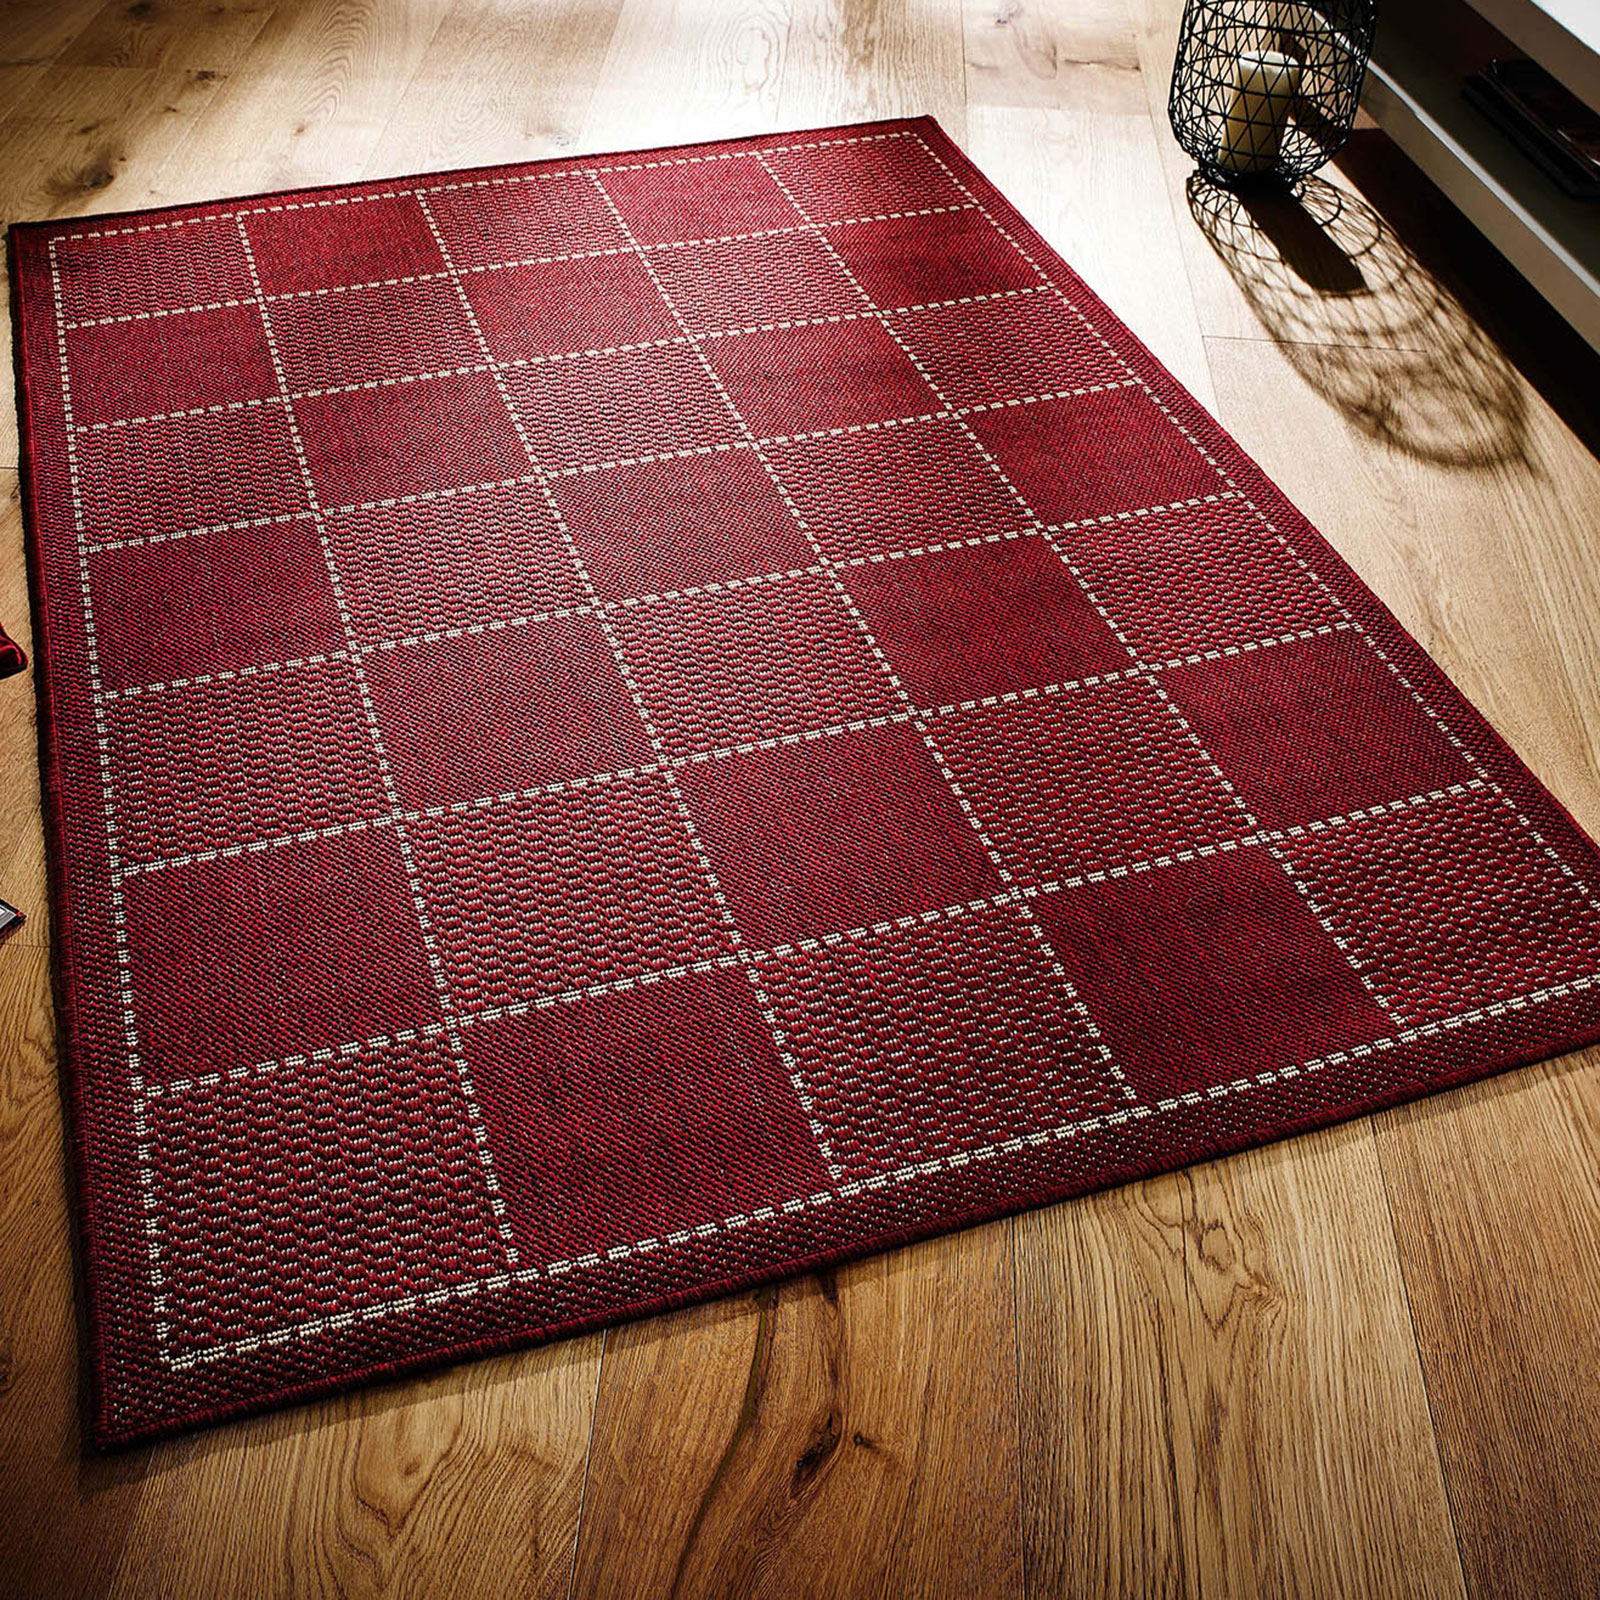 CHECKED FLATWEAVE - RED